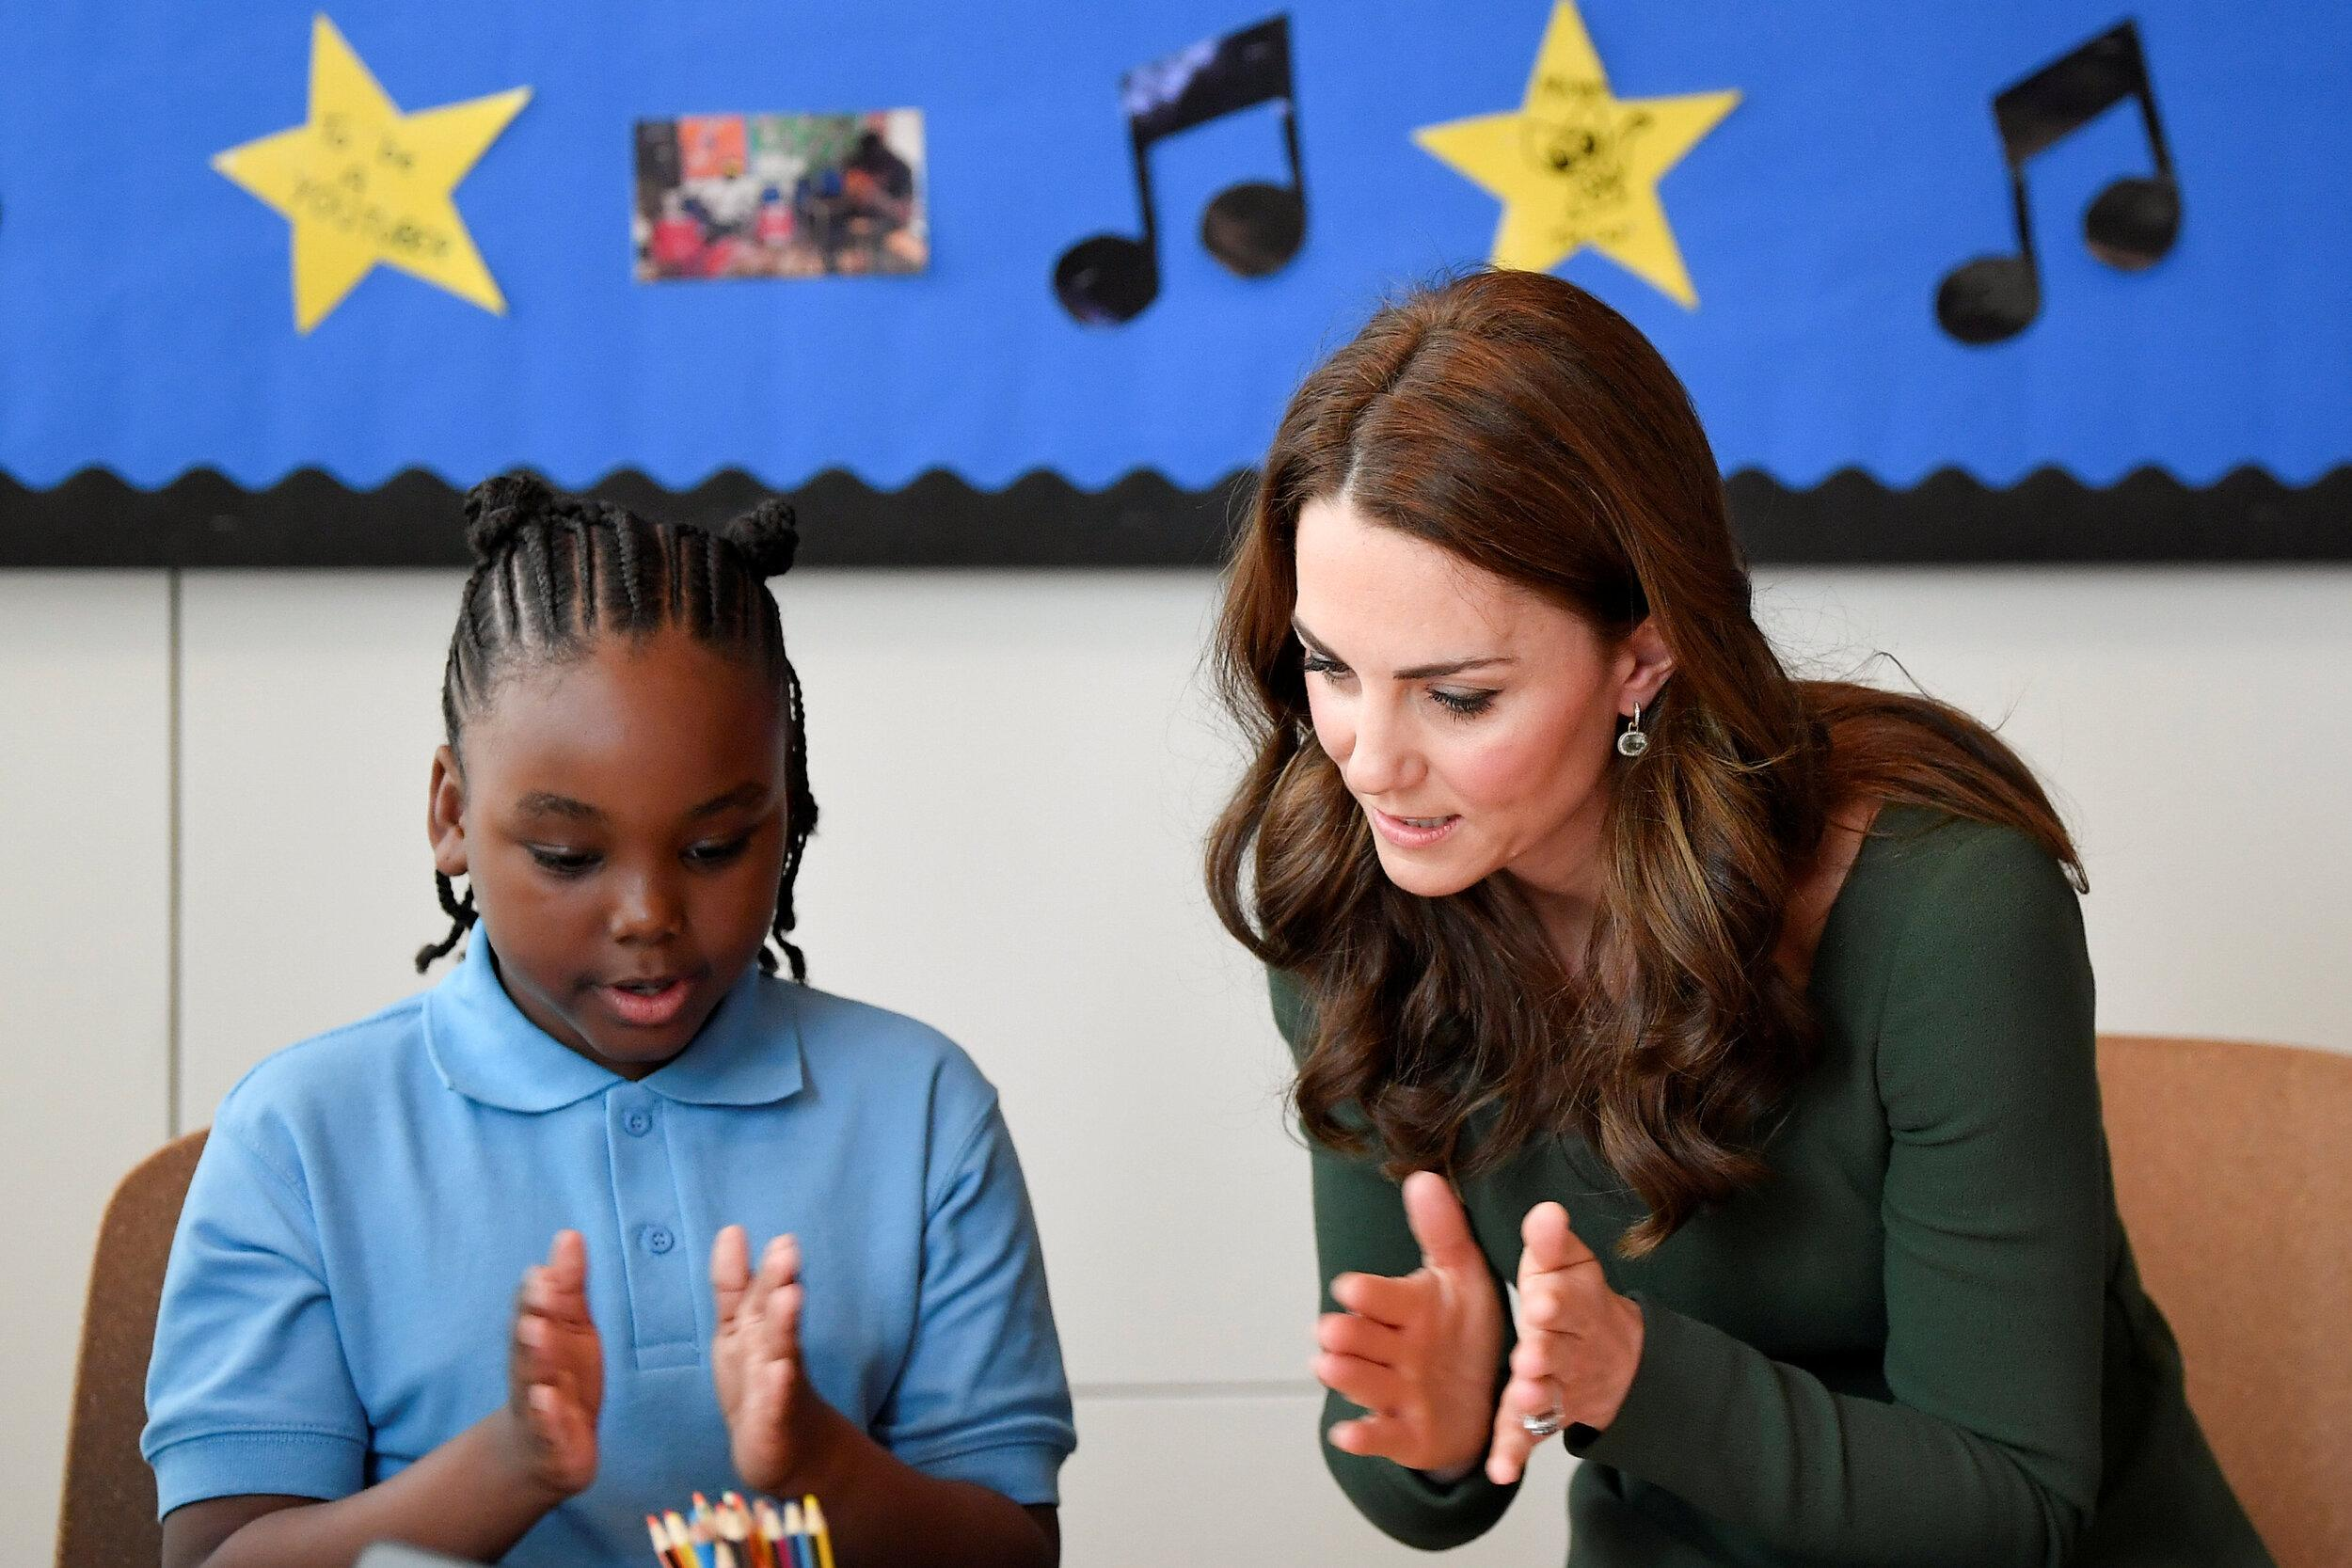 Britain's Catherine, Duchess of Cambridge visits the Anna Freud National Centre for Children and Families in London on May 1, 2019. (Photo by TOBY MELVILLE / POOL / AFP)        (Photo credit should read TOBY MELVILLE/AFP/Getty Images)